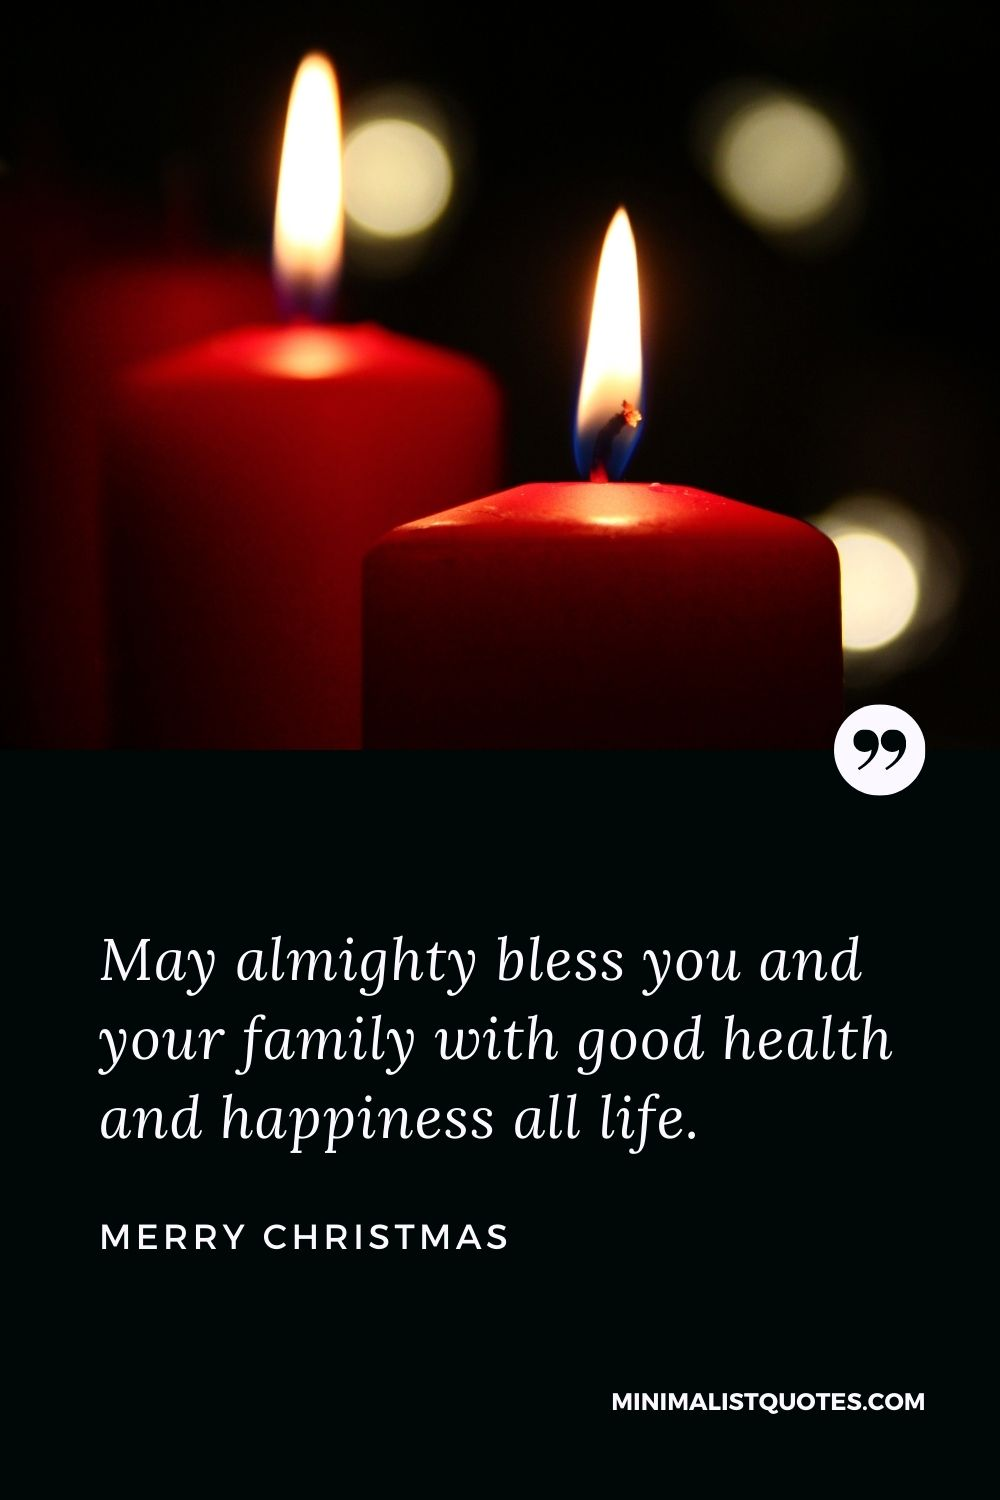 Merry Christmas Wish - May almighty bless you and your family withgood health and happiness all life.